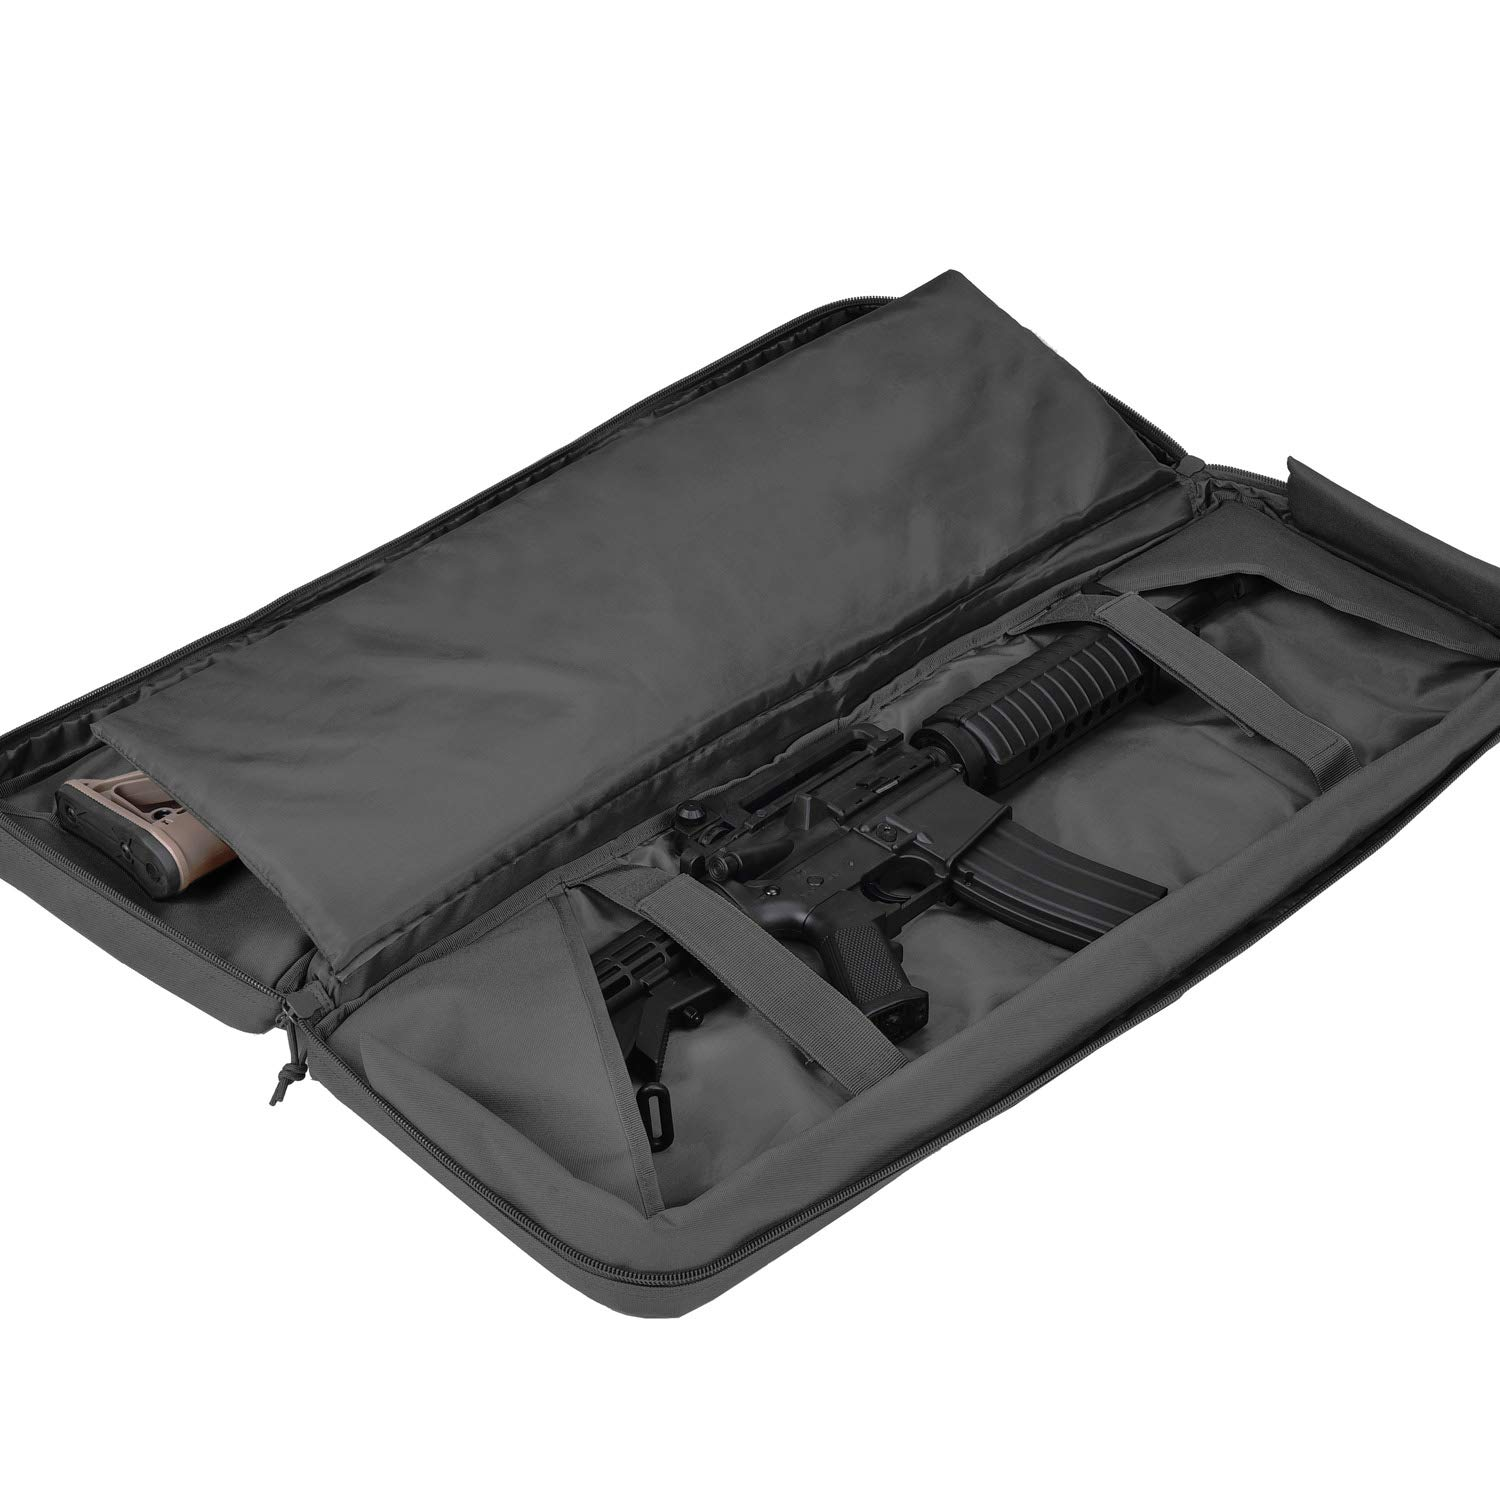 BOW-TAC Double Long Rifle Gun Case Bag Tactical Rifle Backpack Pistol Soft Firearm Transportation Carbine Case - Lockable Compartment, Available Length in 36'' 42'' 46'' by BOW-TAC (Image #3)